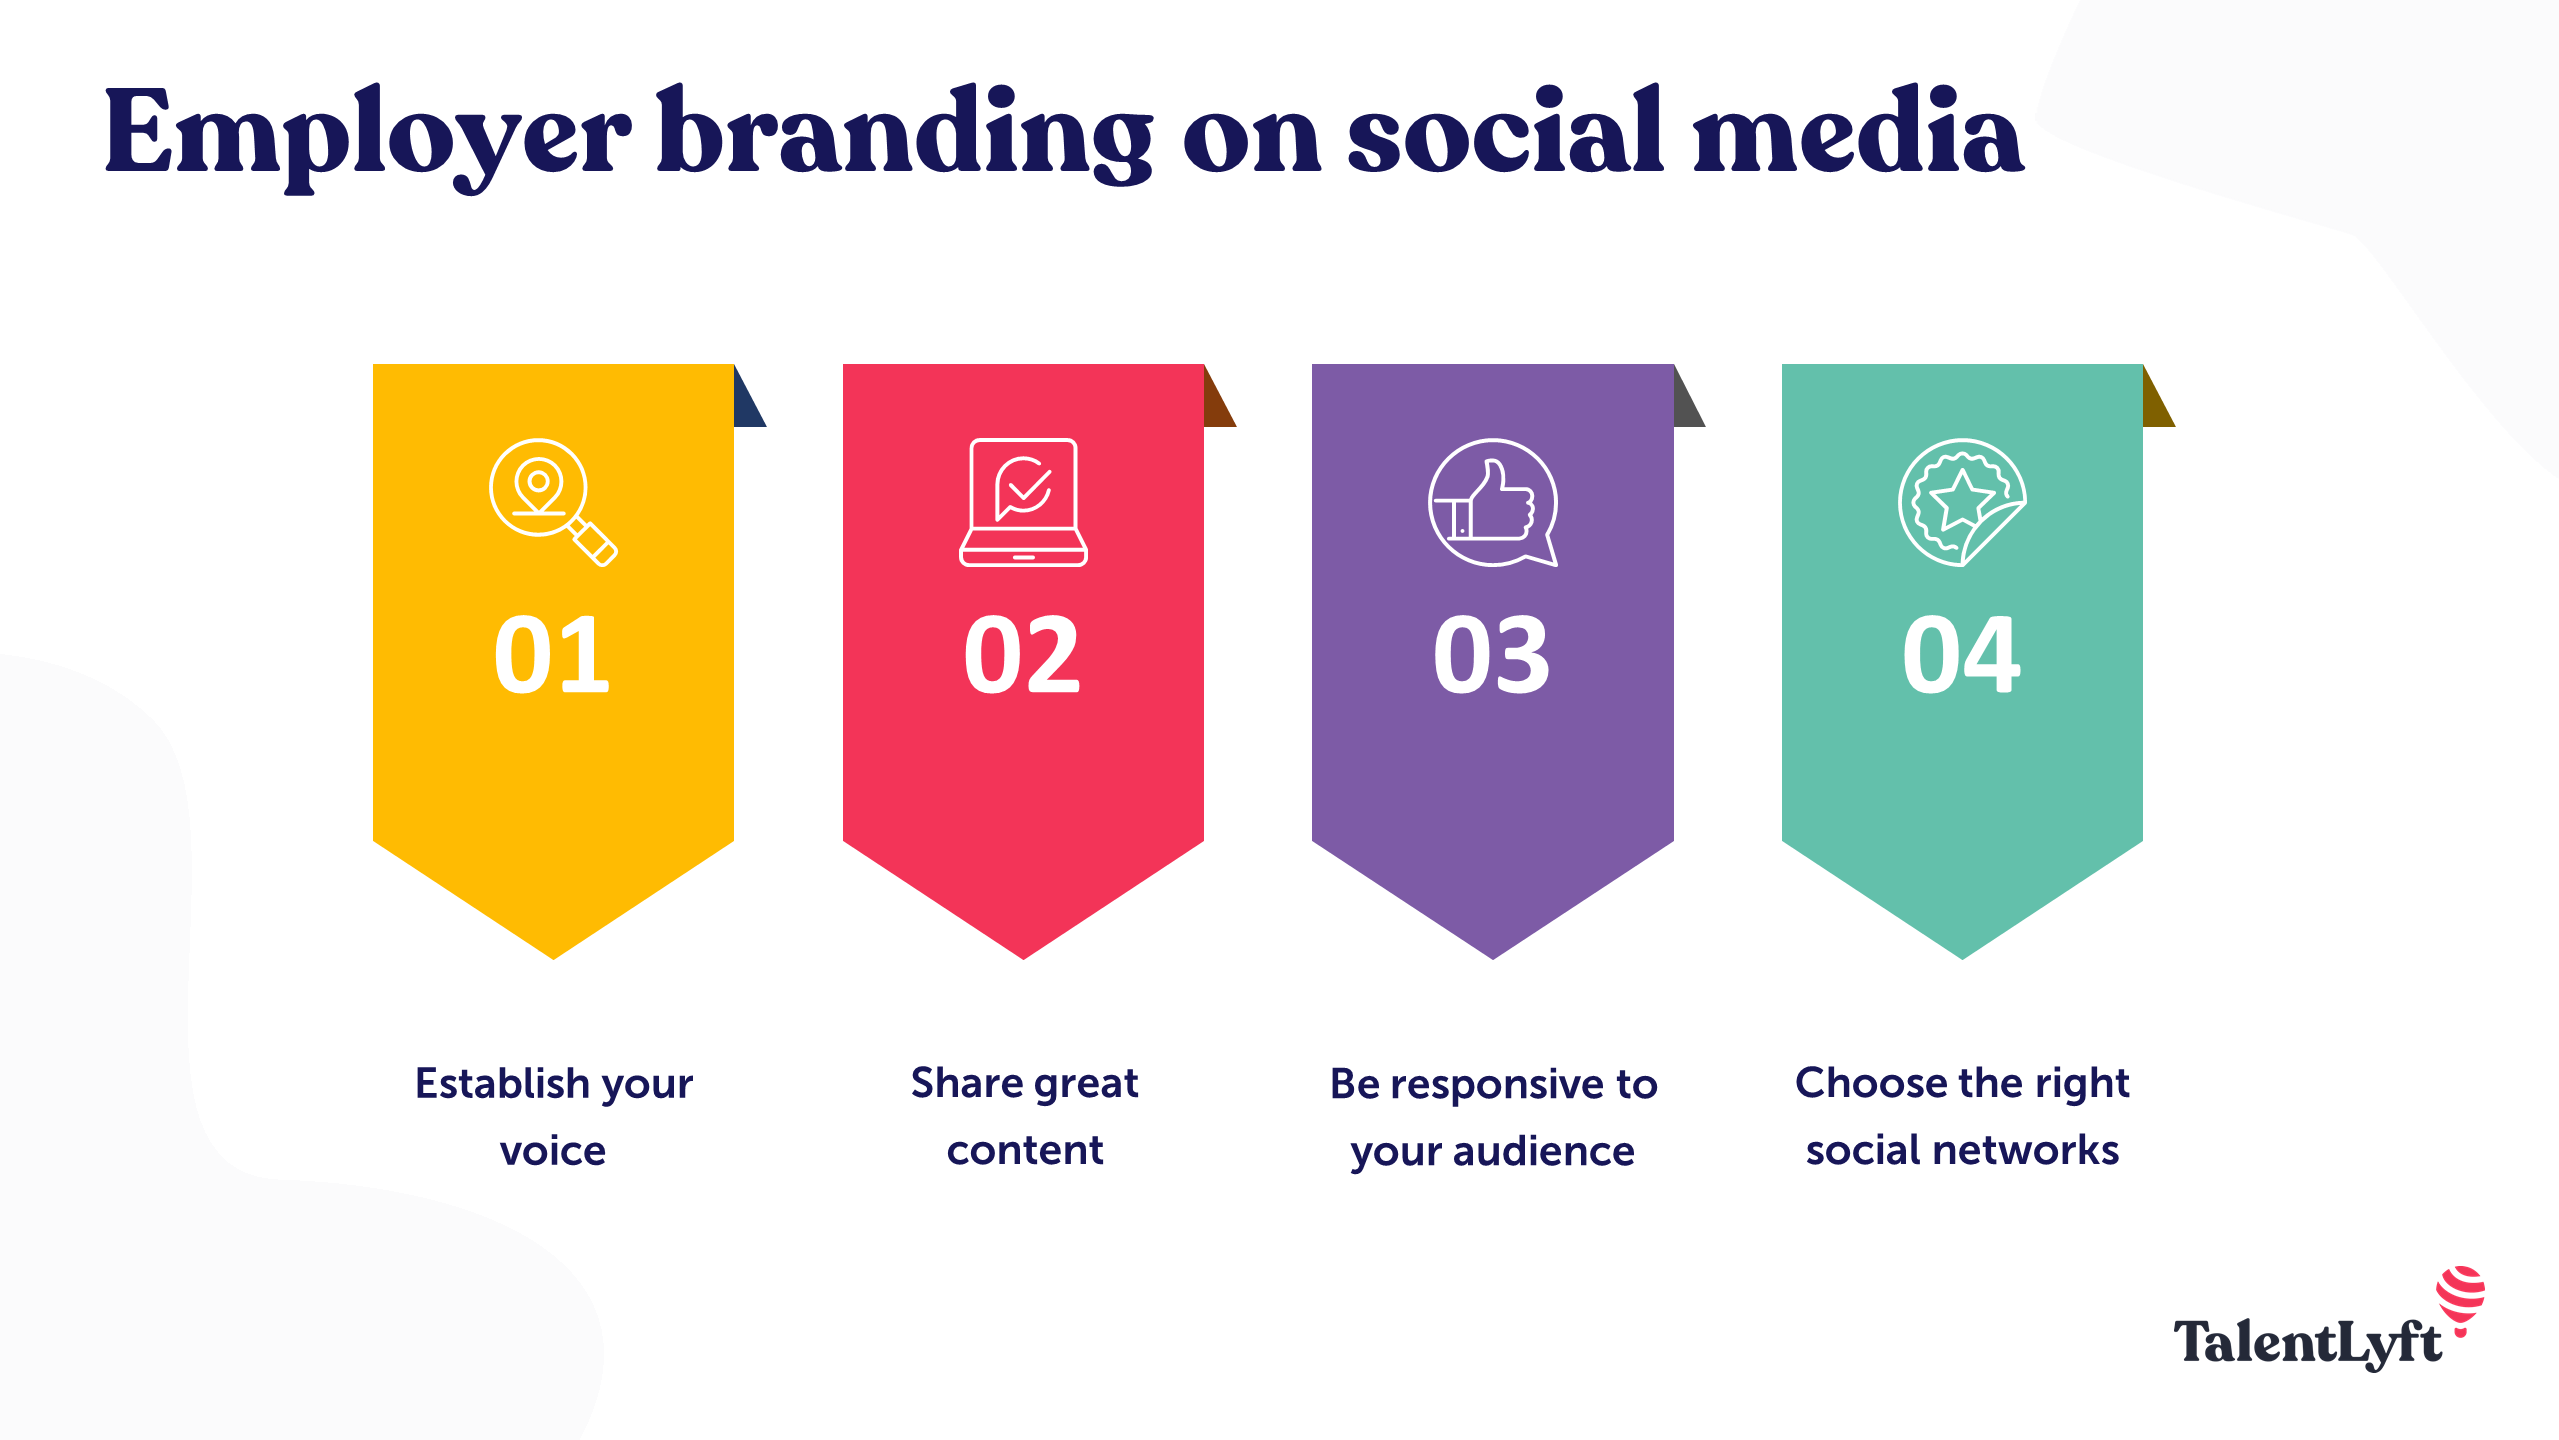 Employer branding on social media